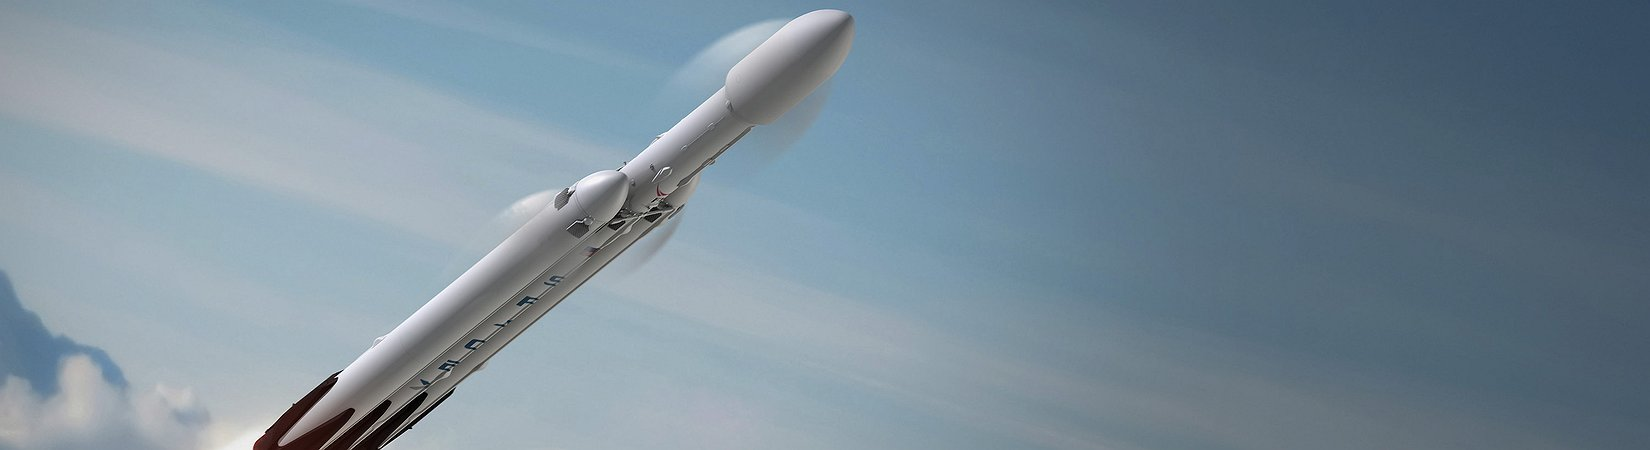 SpaceX tests rocket that could one day take earthlings to Mars